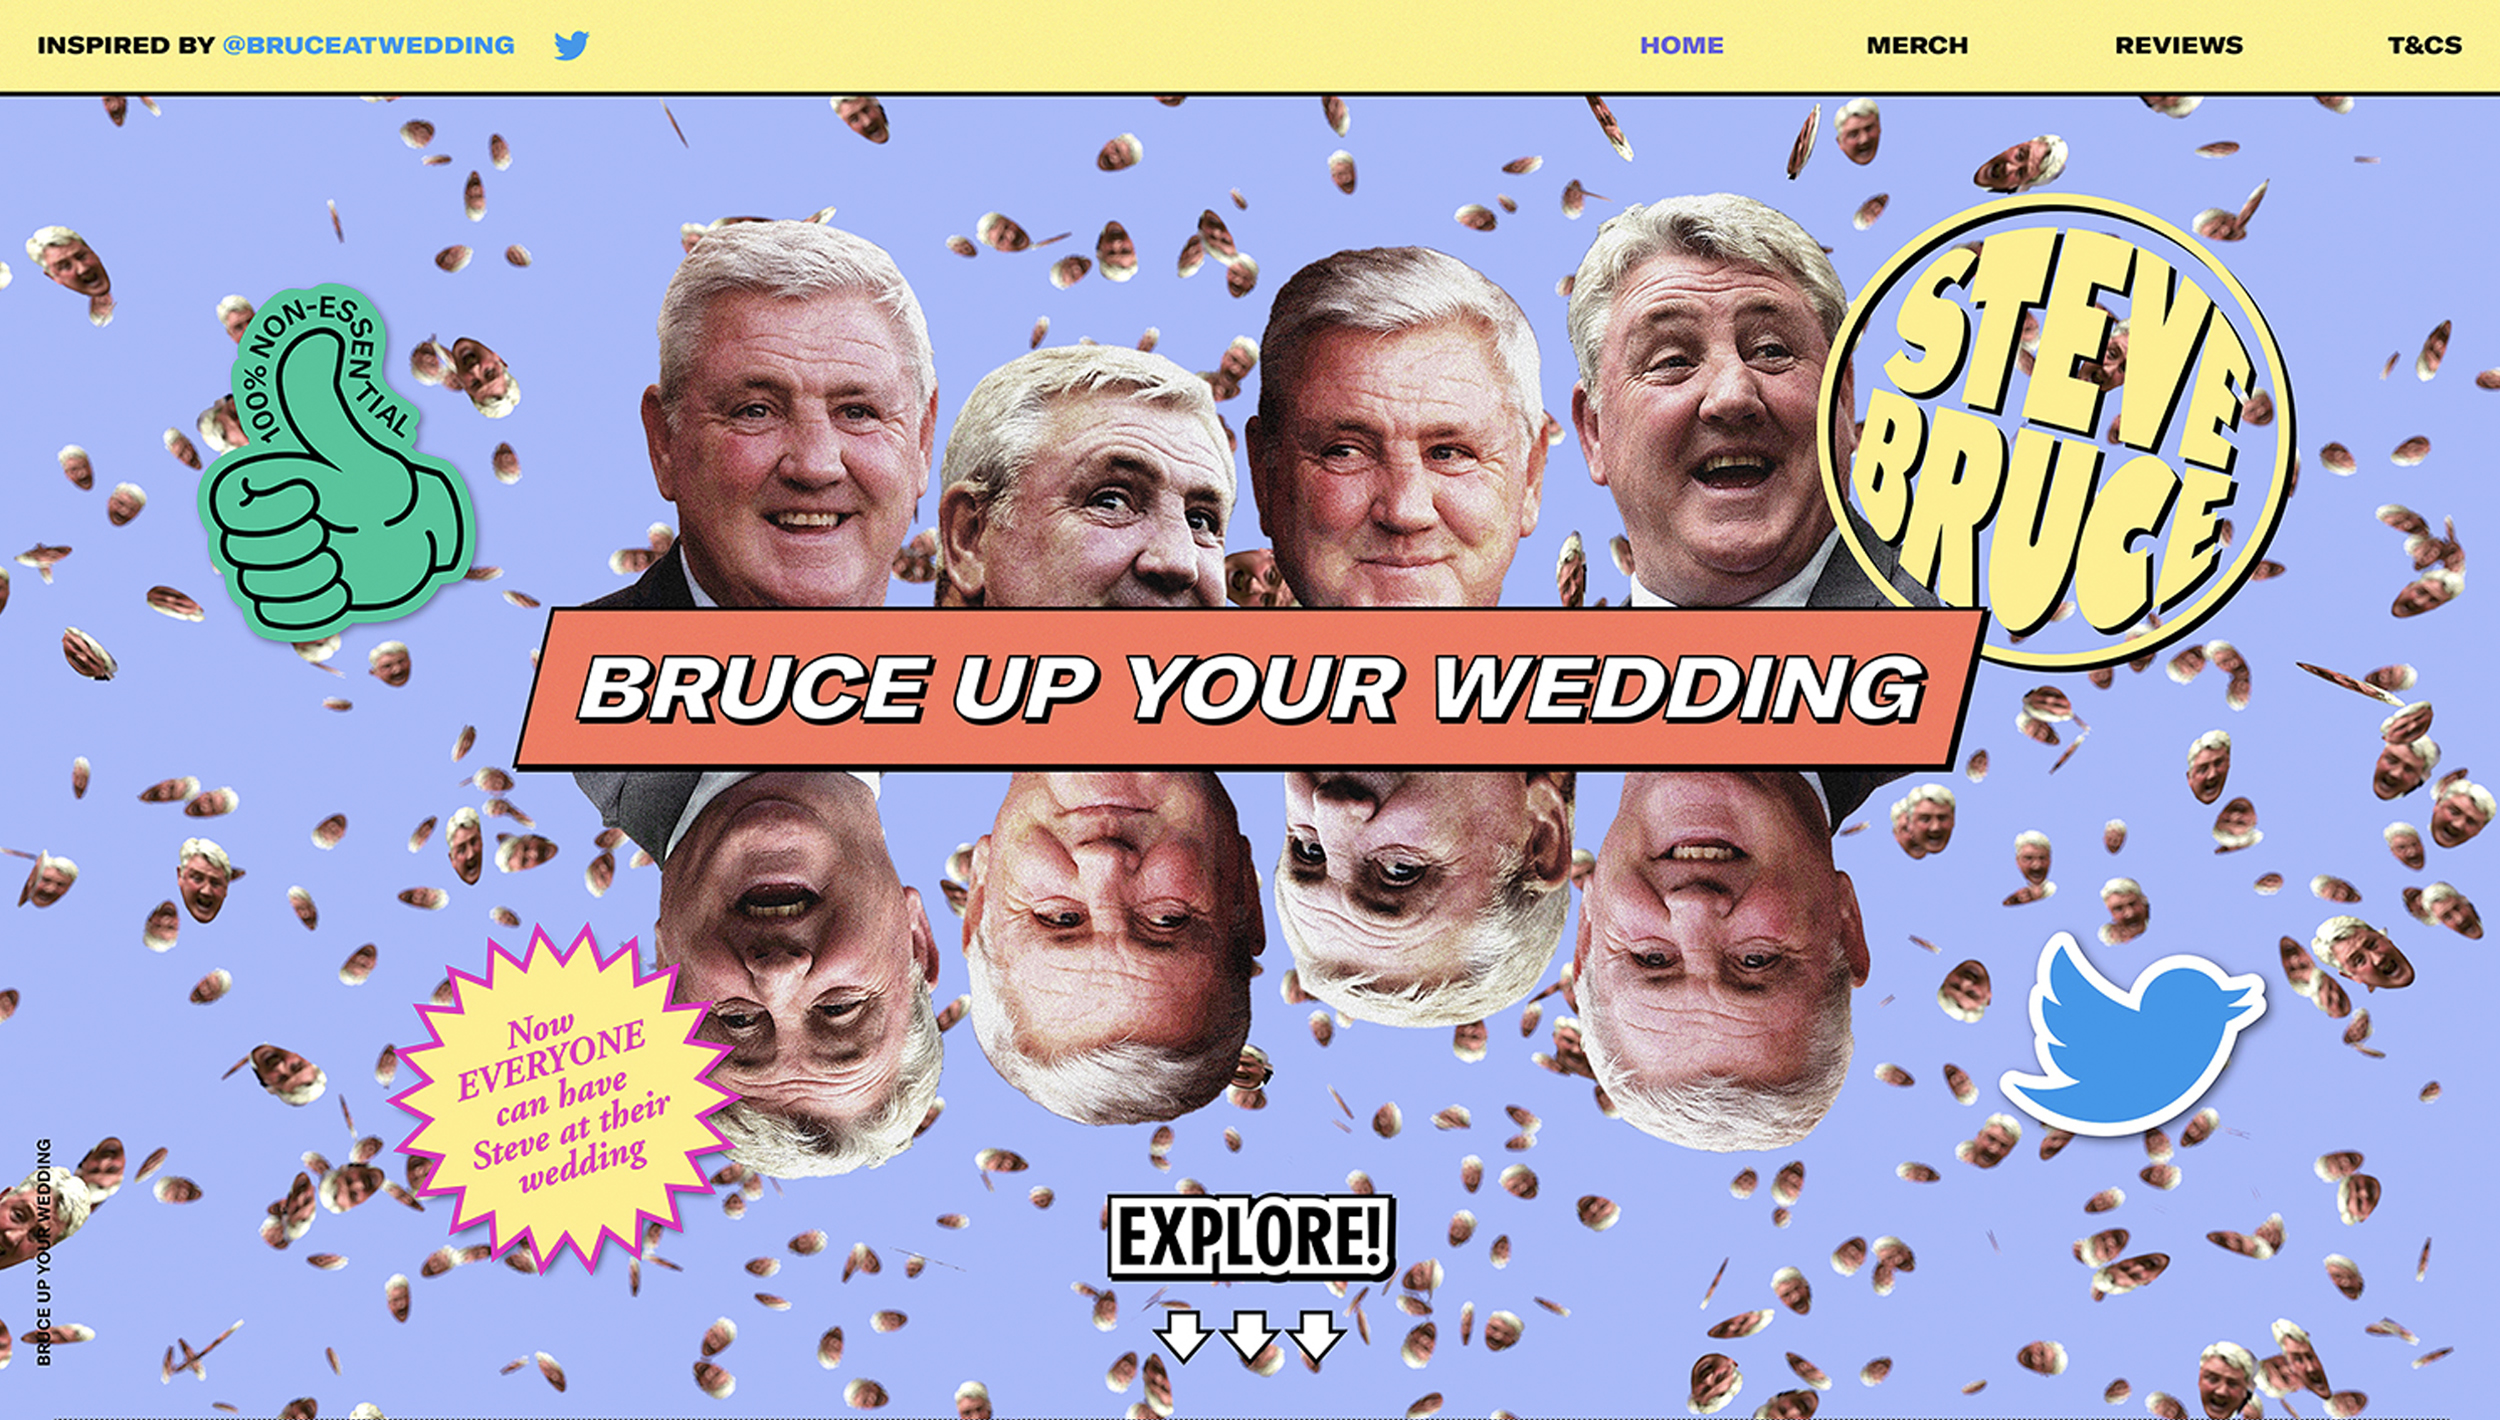 Bruce Up Your Wedding →